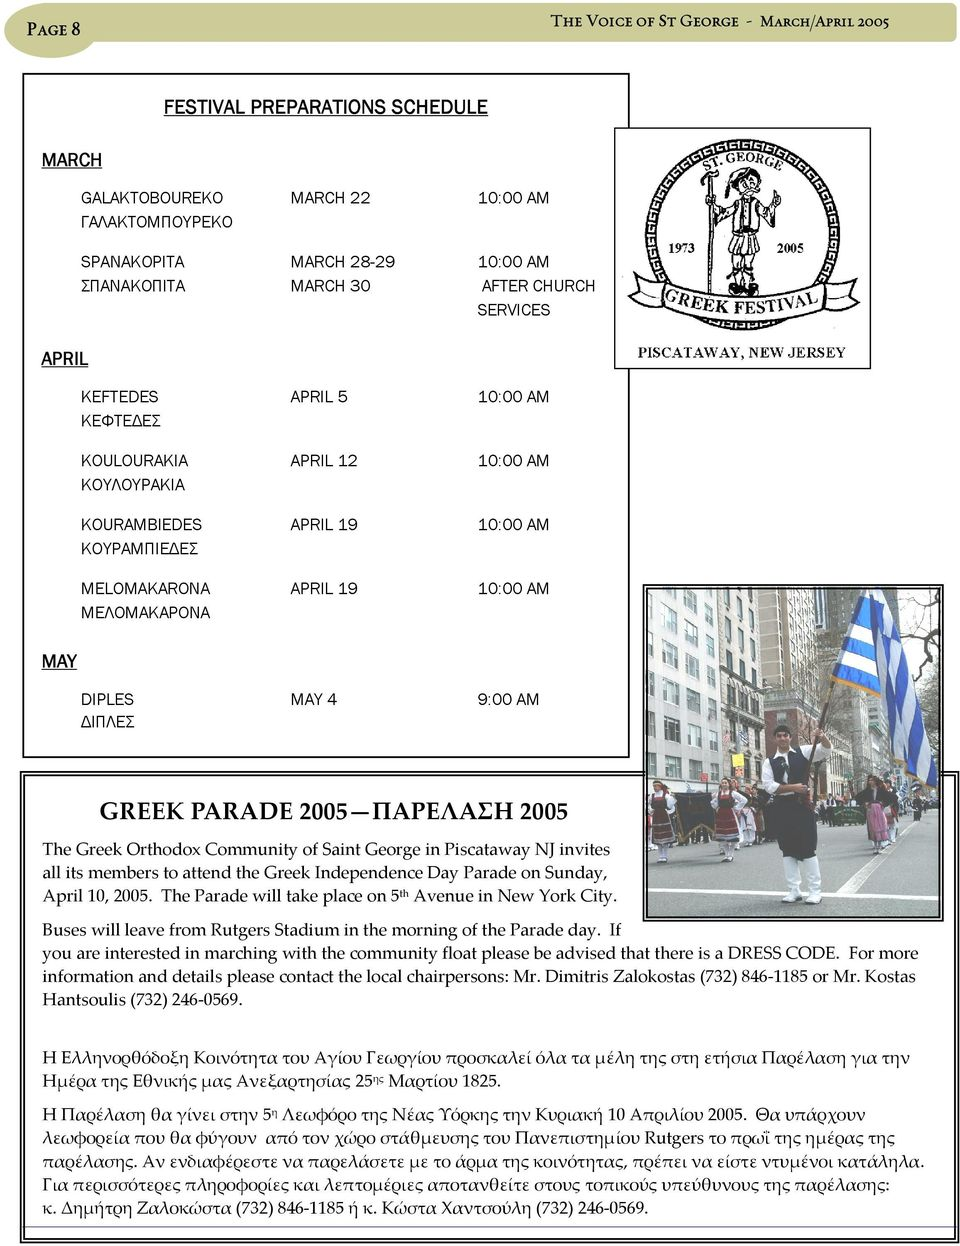 9:00 AM ΙΠΛΕΣ GREEK PARADE 2005 ΠΑΡΕΛΑΣΗ 2005 The Greek Orthodox Community of Saint George in Piscataway NJ invites all its members to attend the Greek Independence Day Parade on Sunday, April 10,